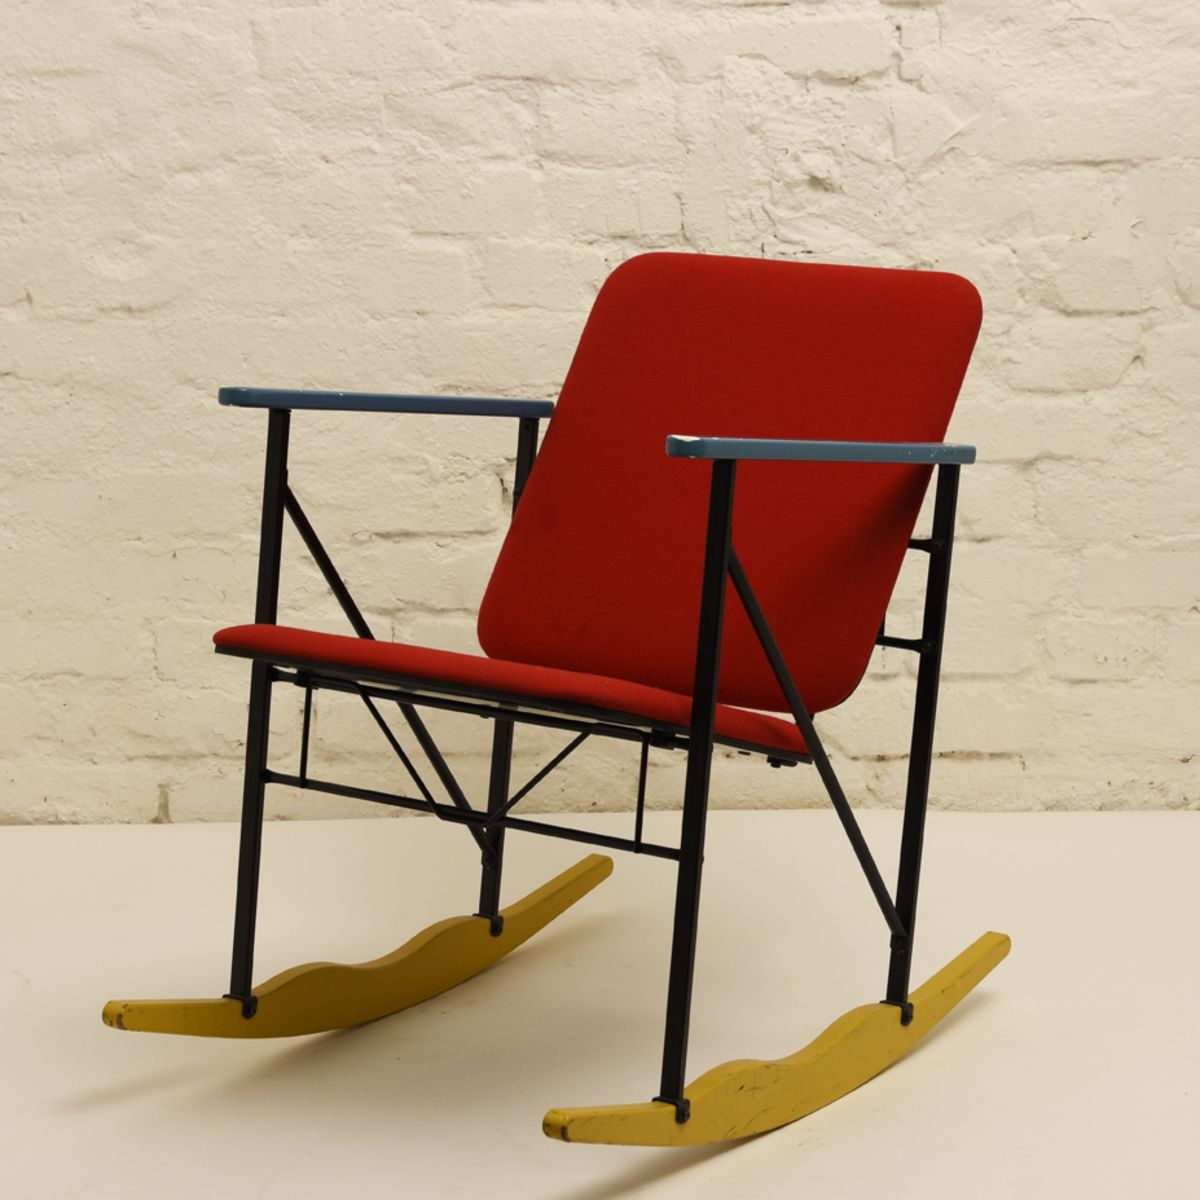 Kukkapuro-Yrjo_Experiment-Rocking-Chair-Red